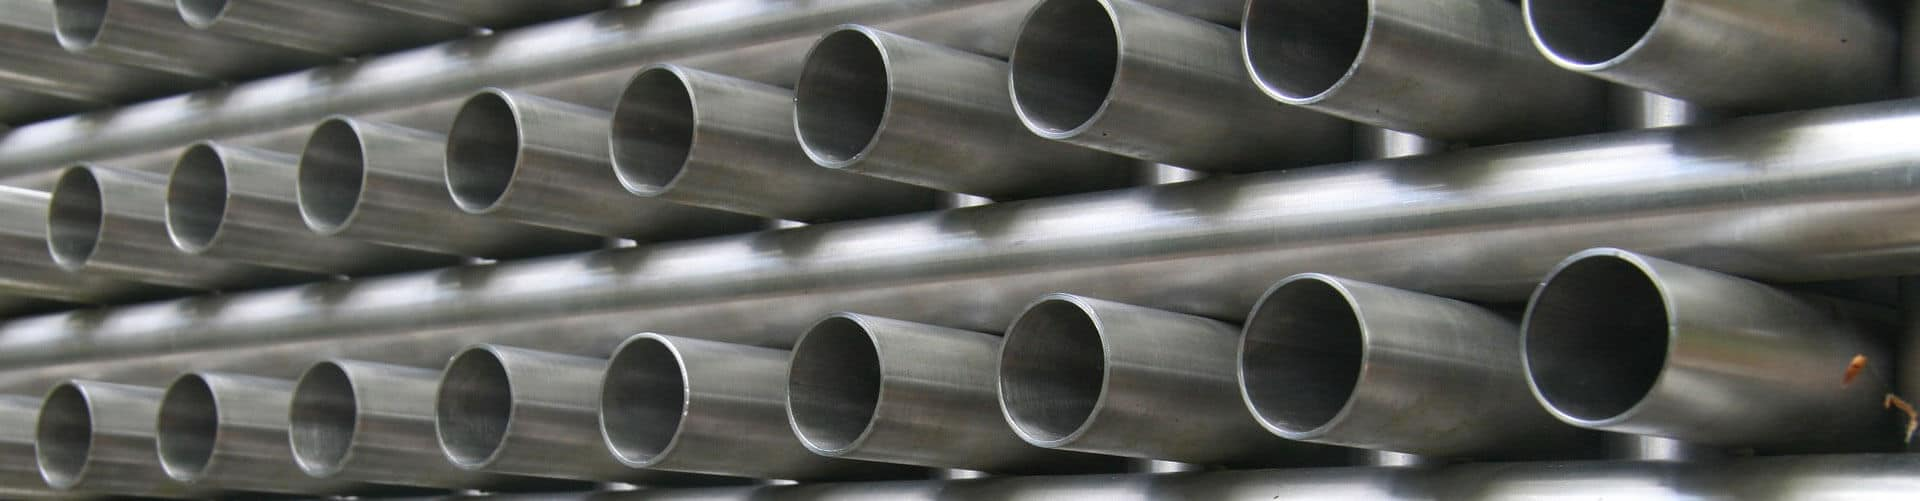 Inconel Alloy 718 Pipe and Tube